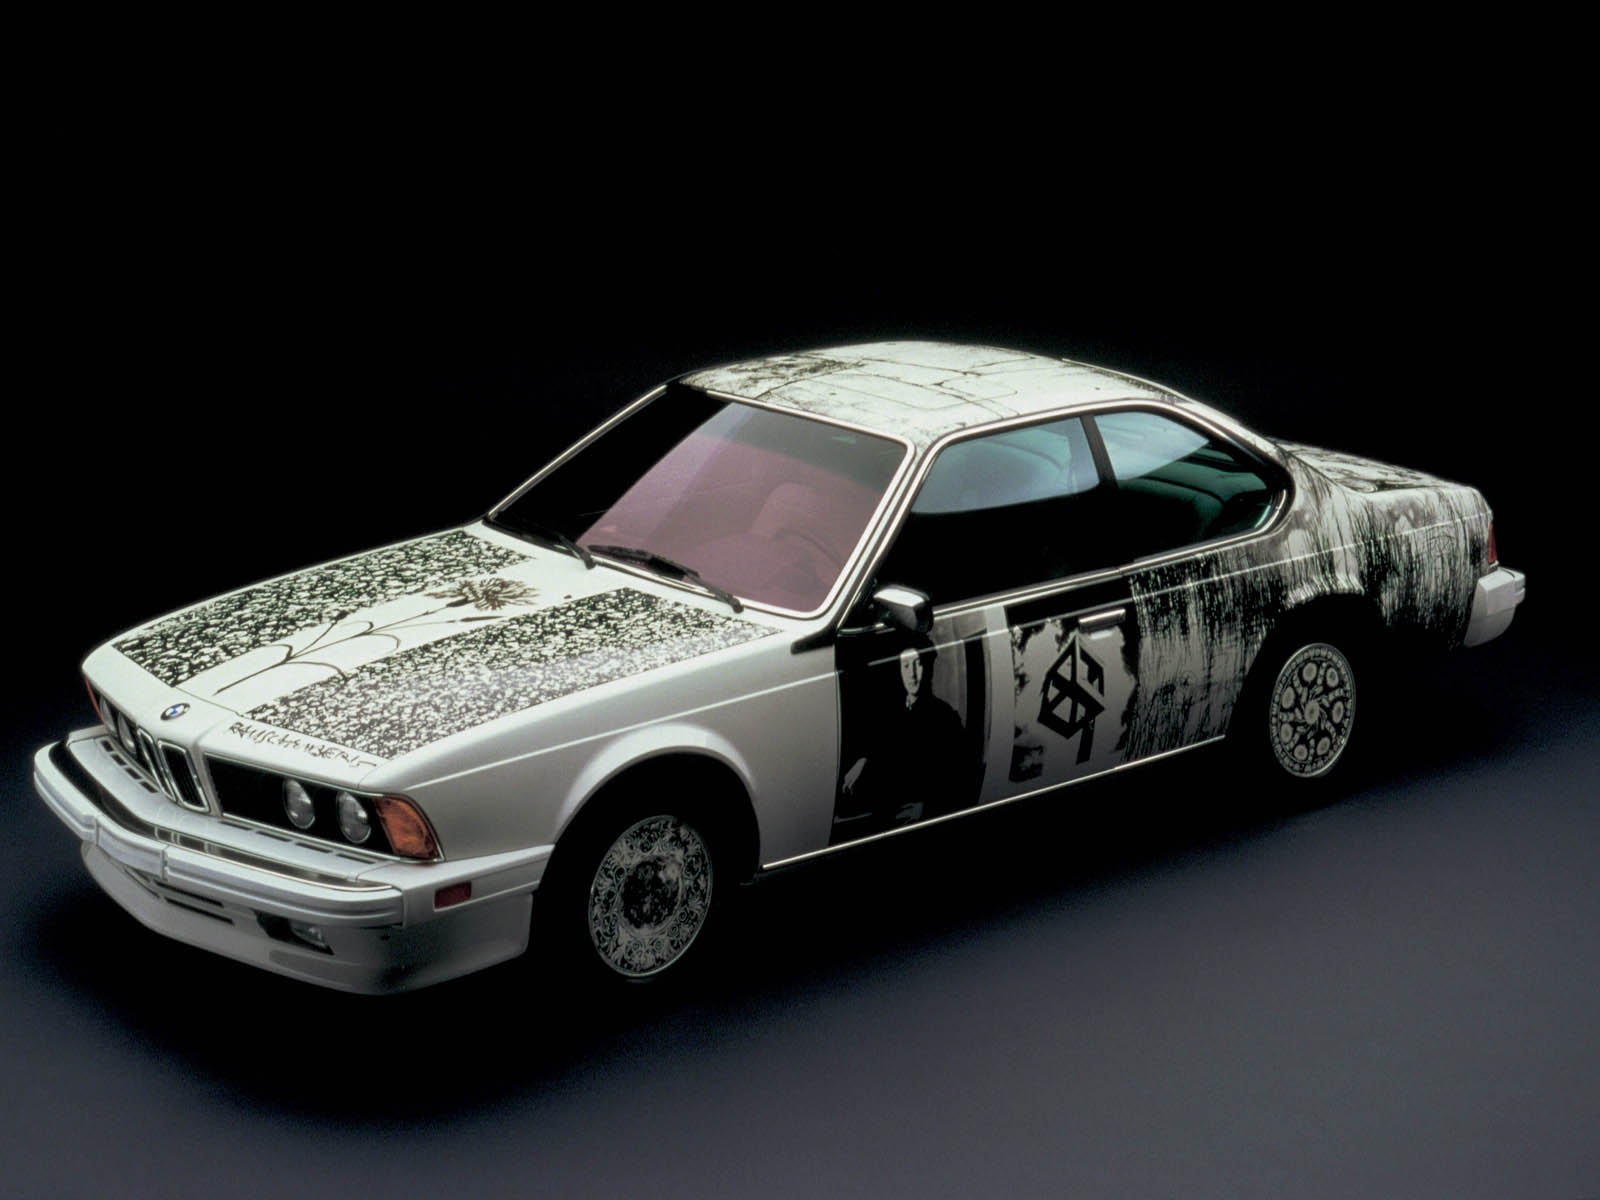 BMW 635 Csi art car